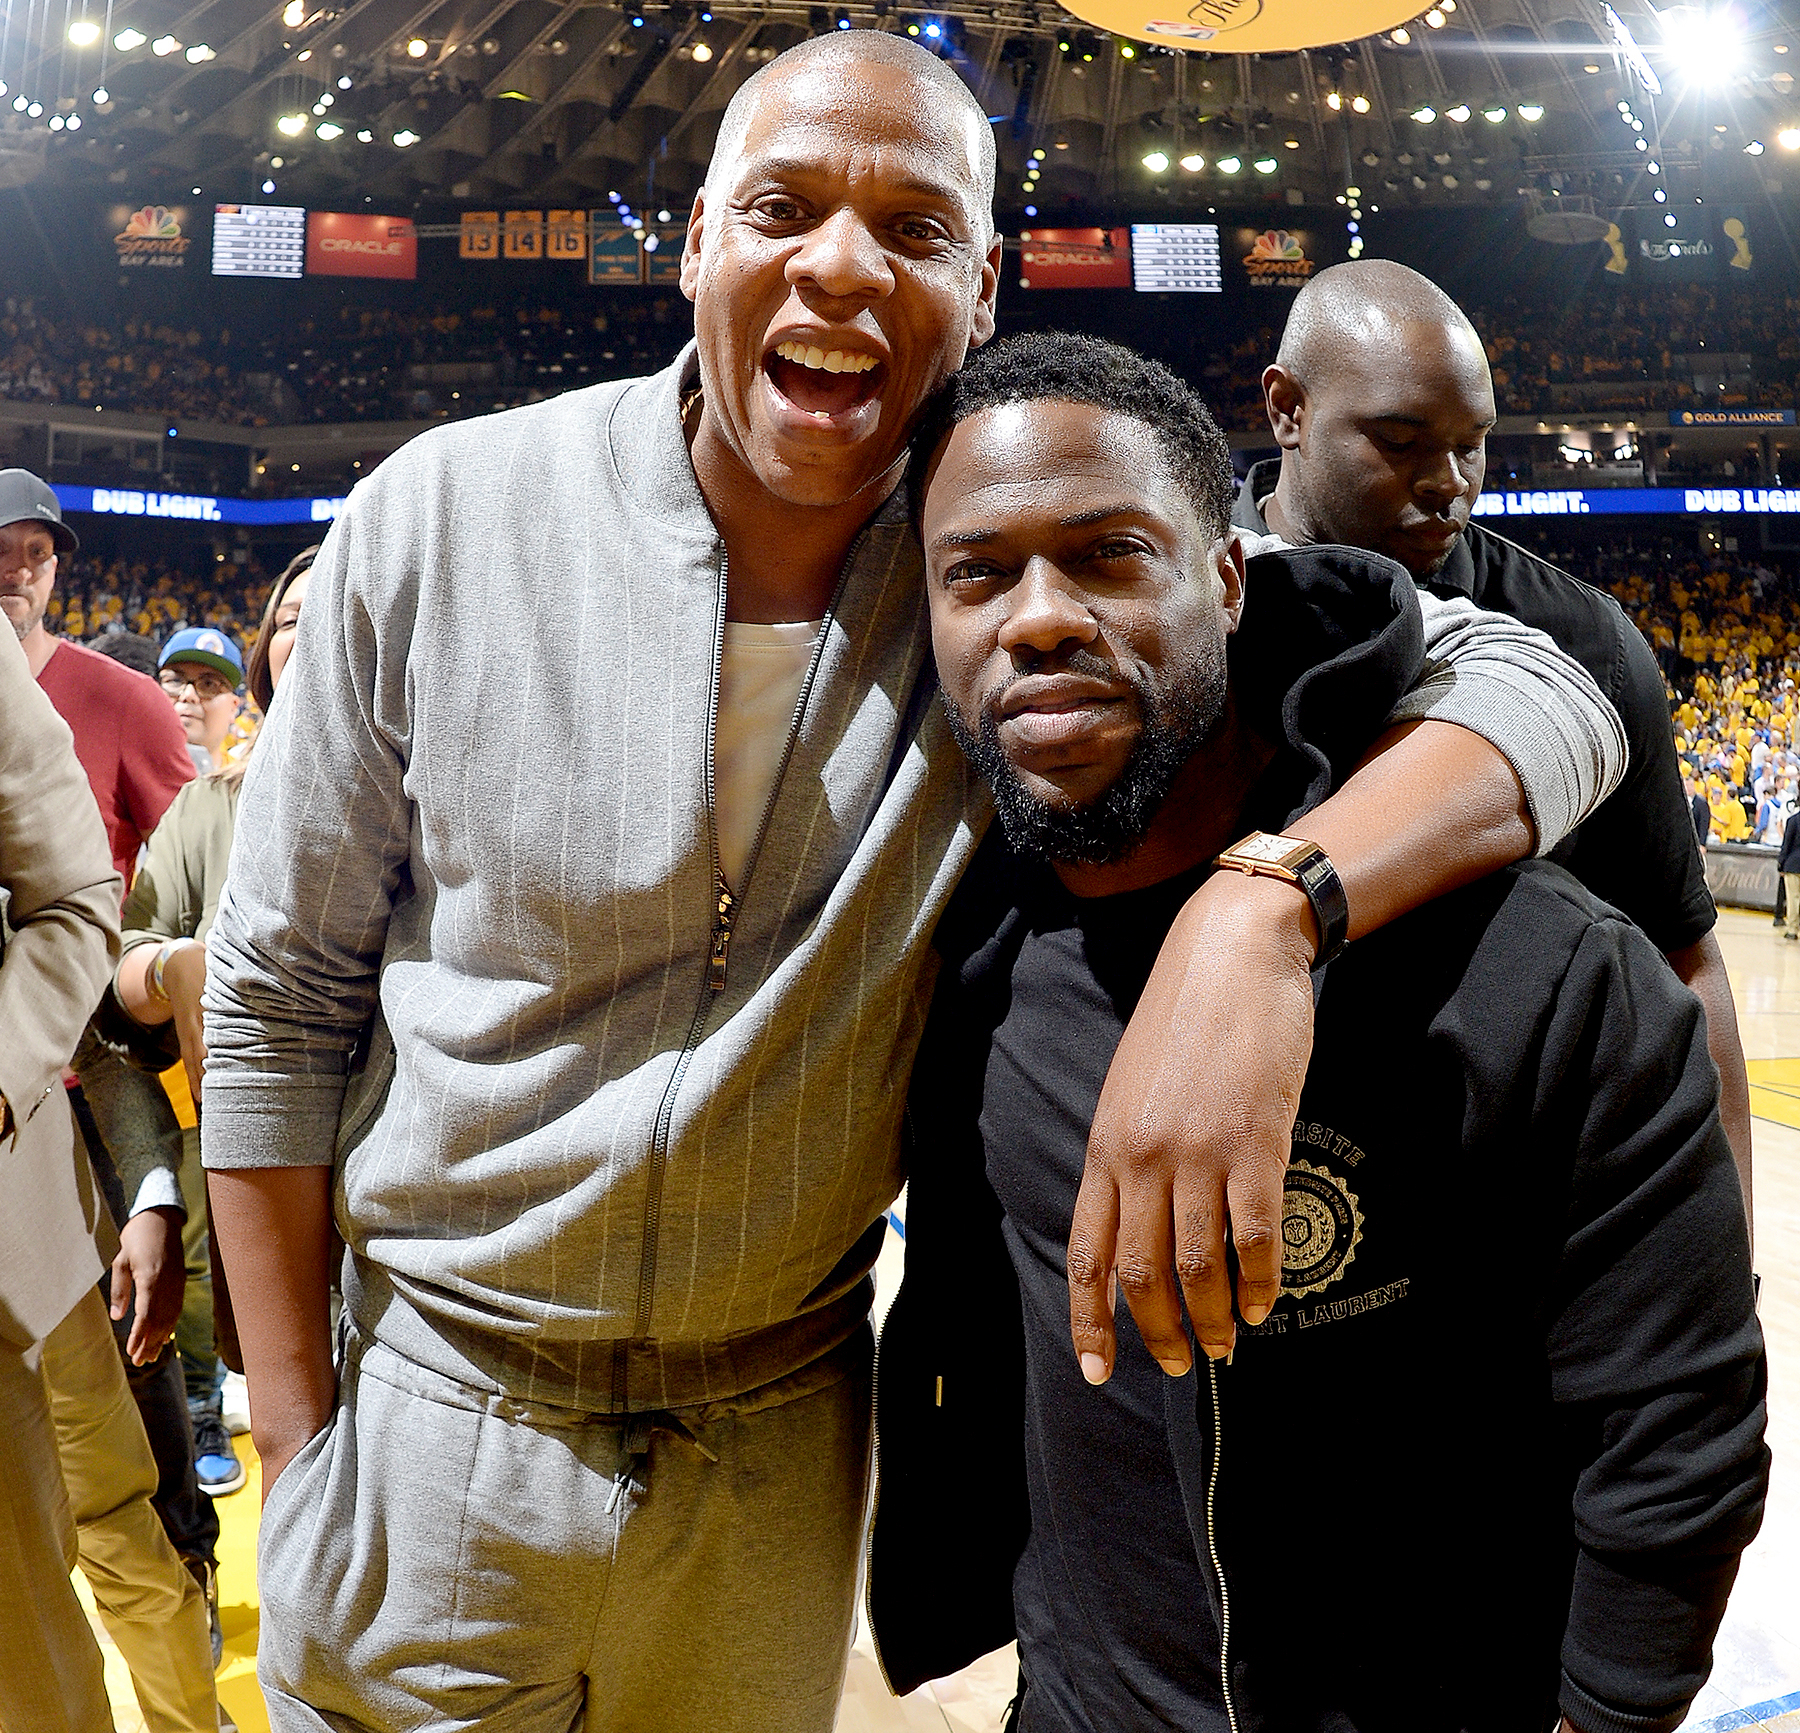 Jay-Z and Kevin Hart are seen at the game between the Golden State Warriors and the Cleveland Cavaliers during Game One of the 2017 NBA Finals at Oracle Arena on June 1, 2017 in Oakland, California.